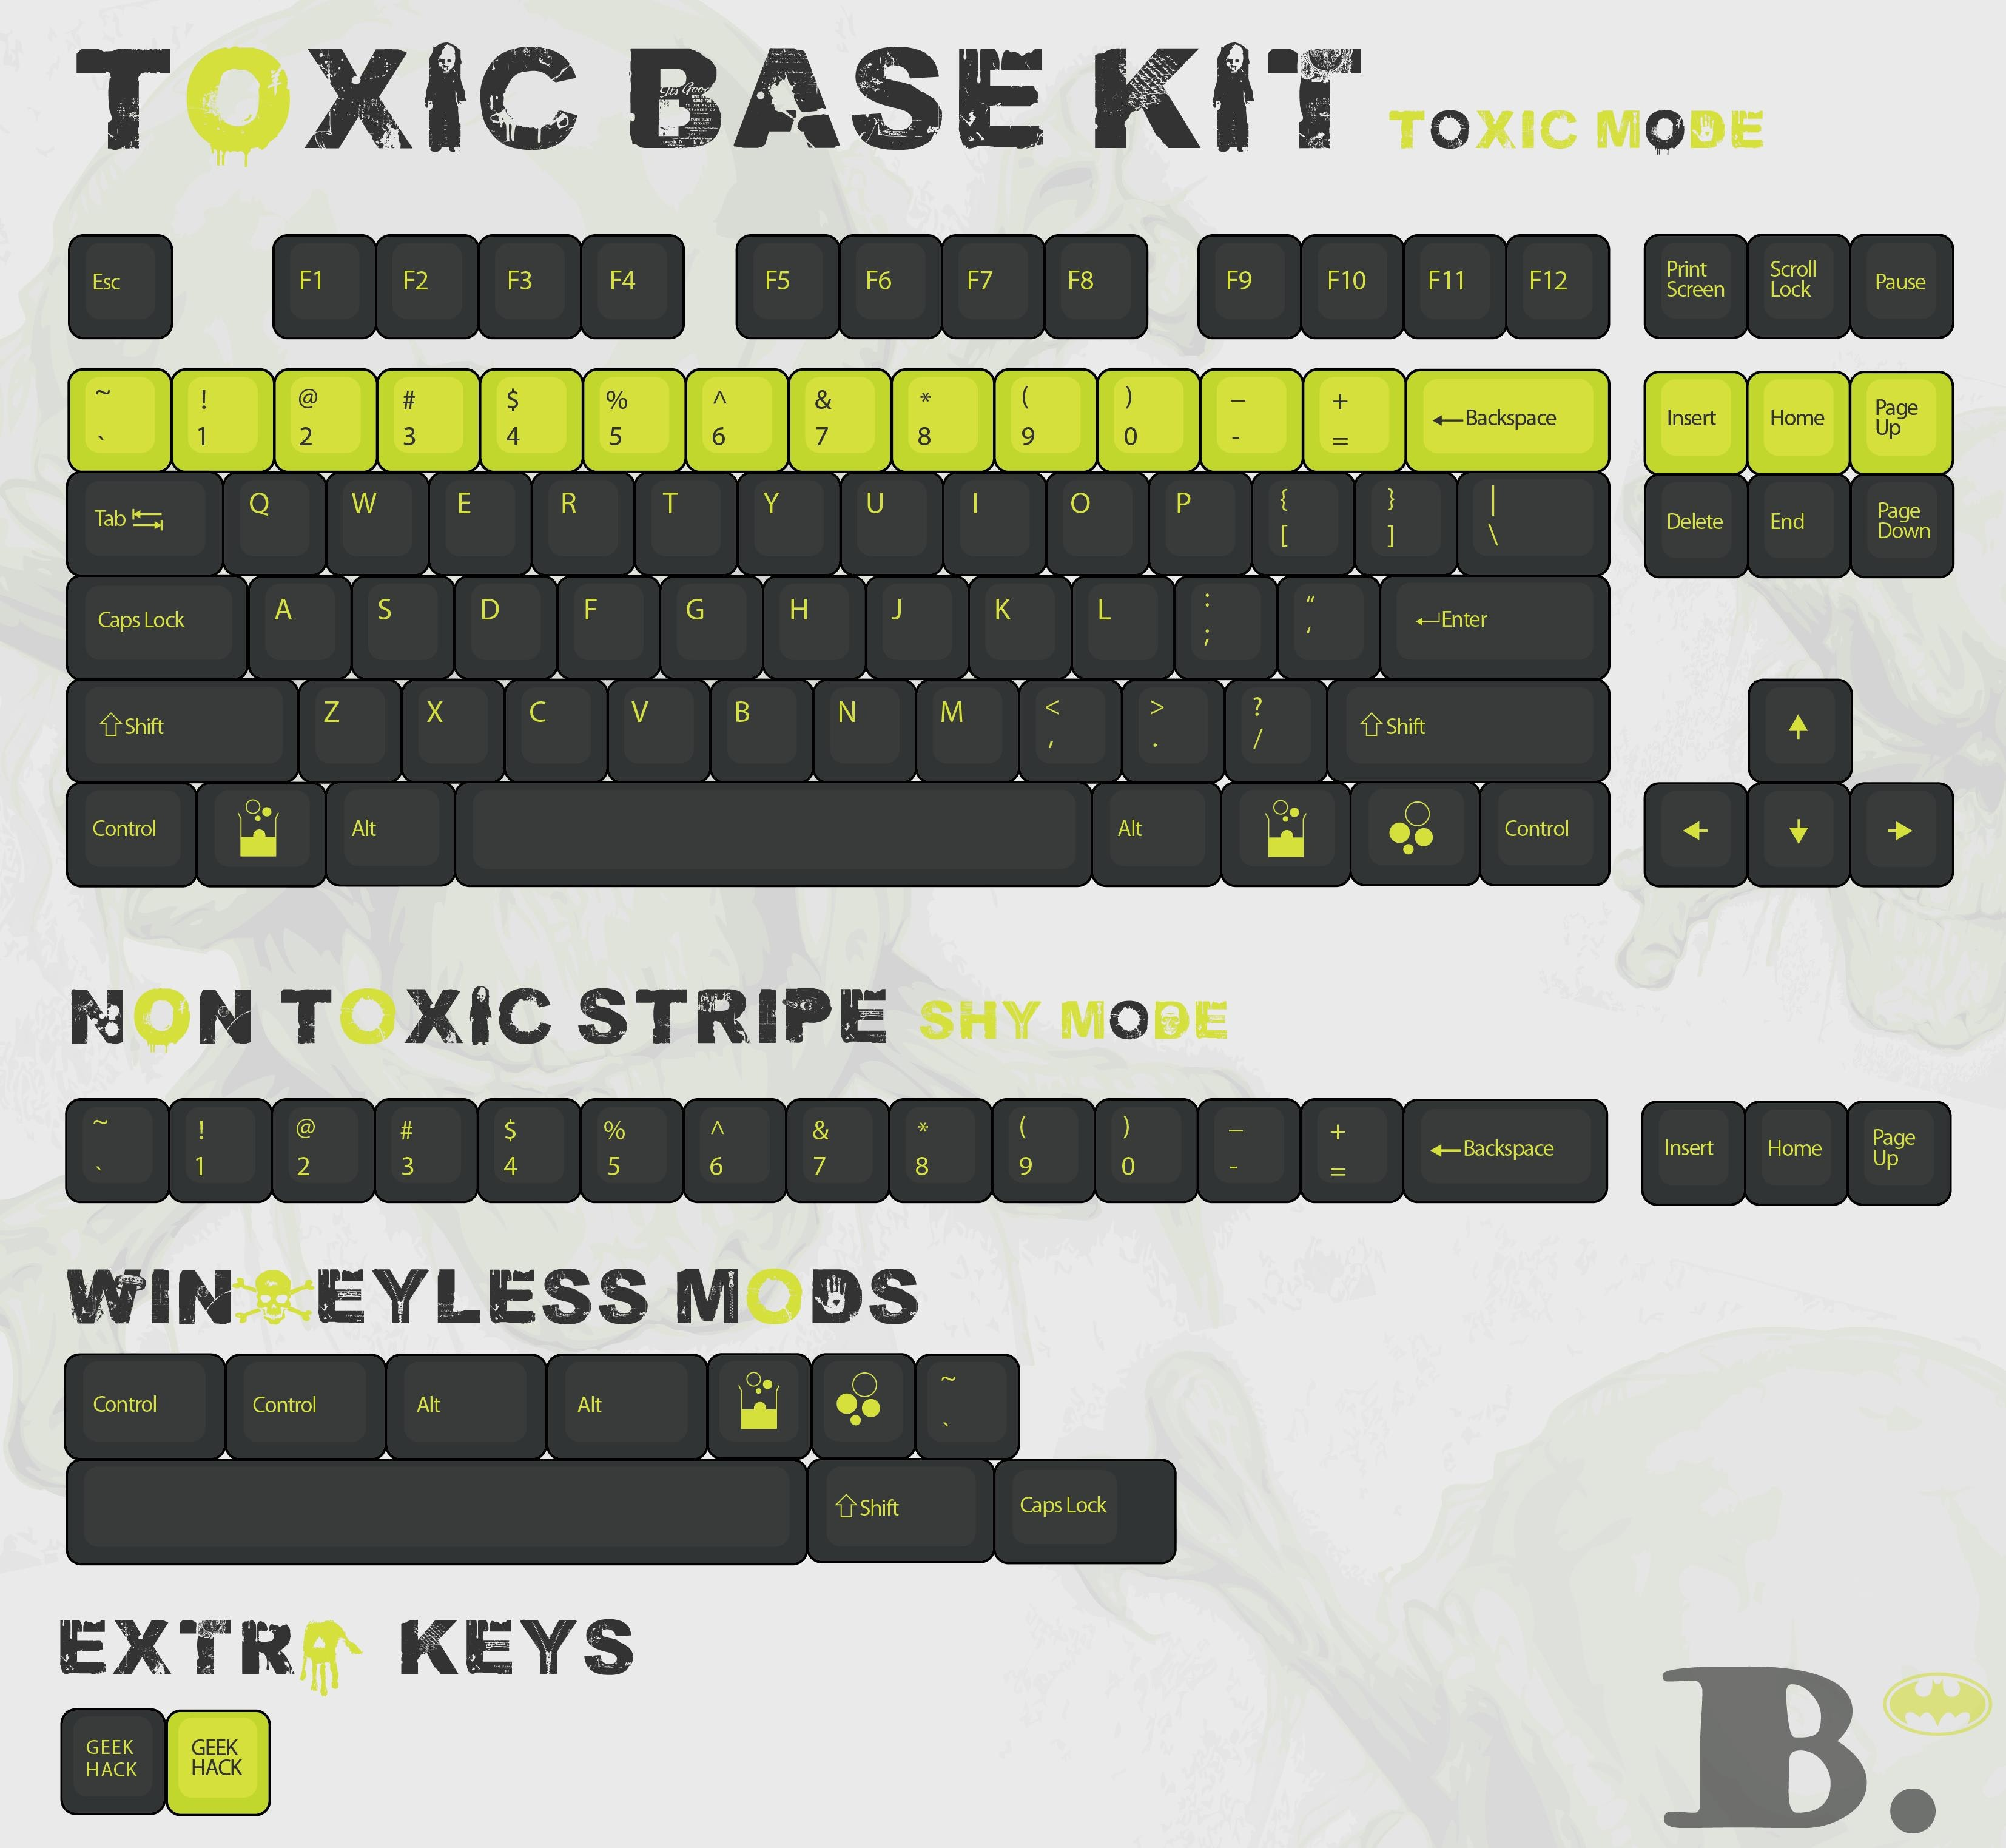 The Toxic set [restructuring with ctrl alt store]